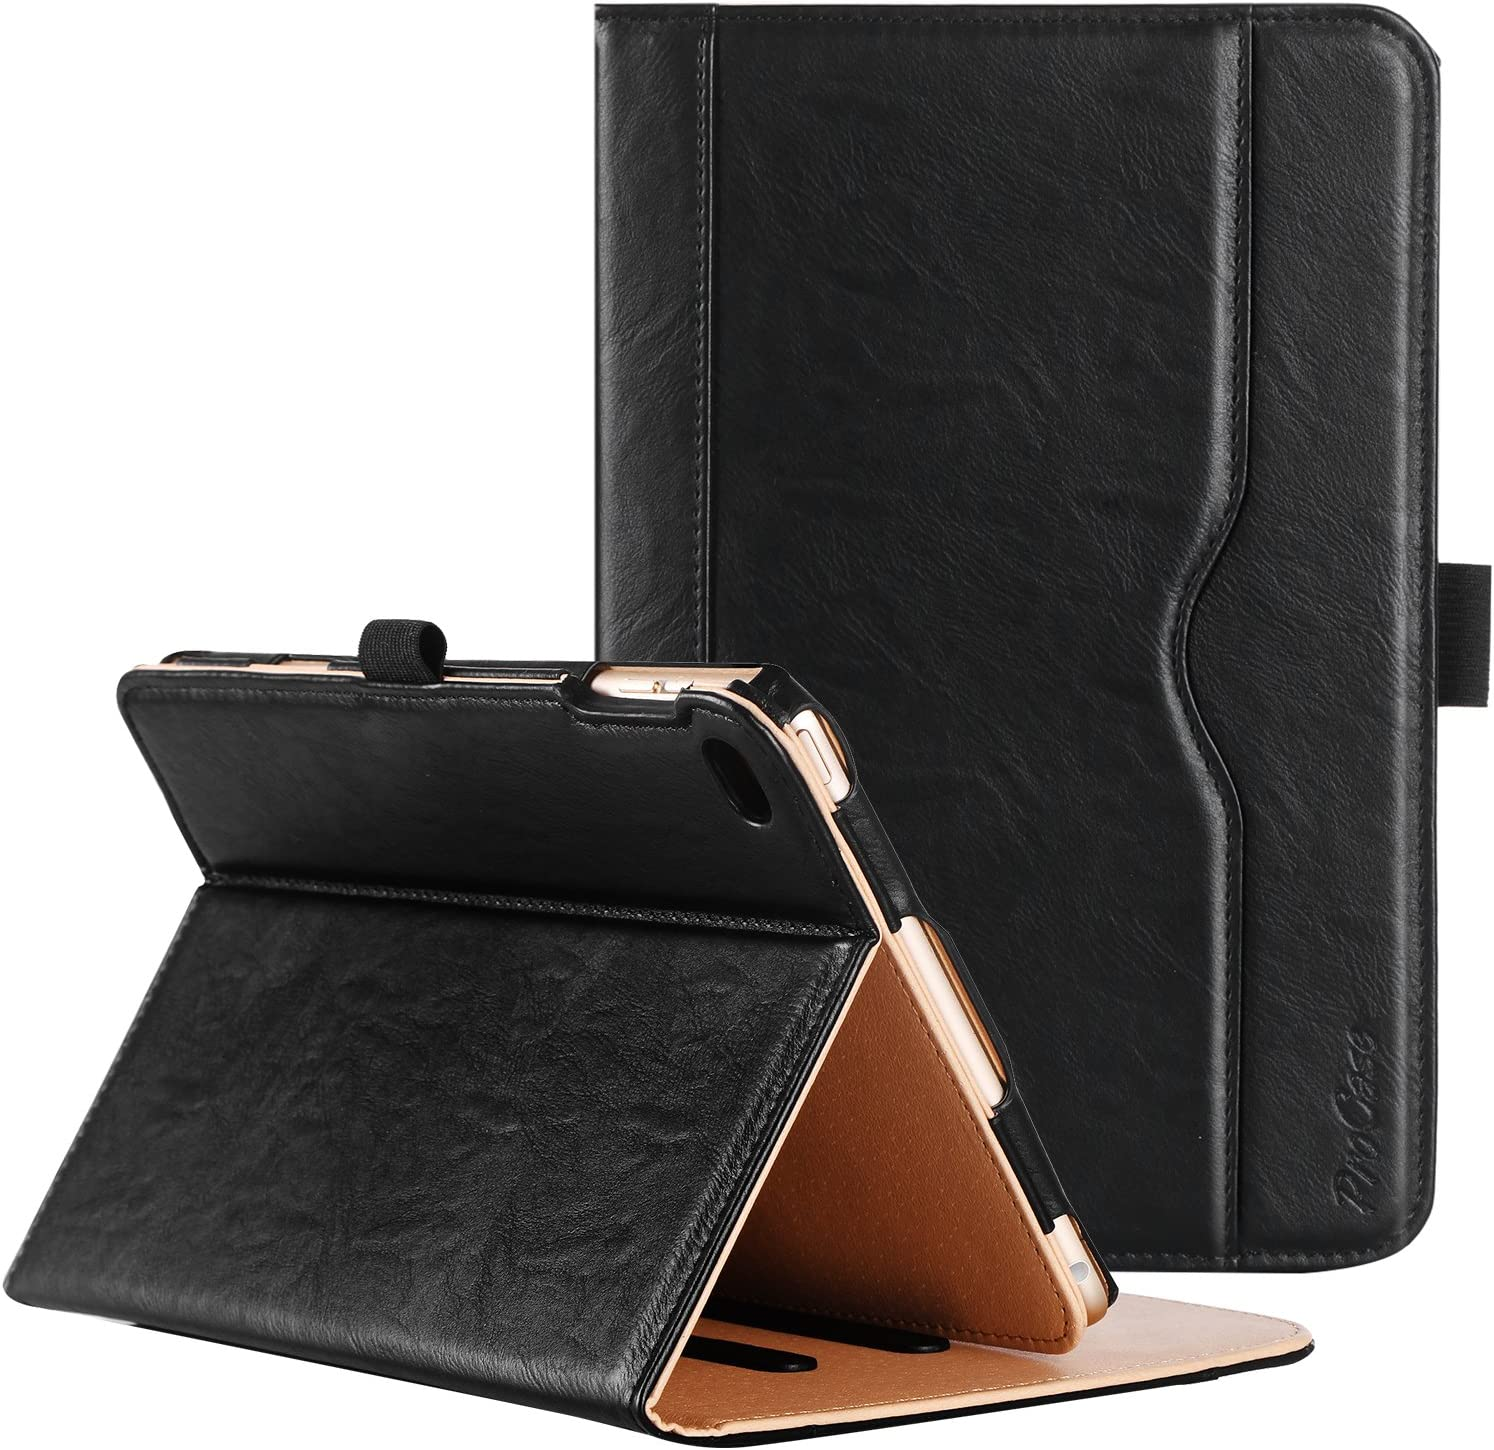 ProCase iPad Mini 4 Case - Leather Stand Folio Case Cover for 2015 Apple iPad Mini 4 (4th Generation iPad Mini, mini4), with Multiple Viewing Angles, auto Sleep/Wake, Document Card Pocket (Black)